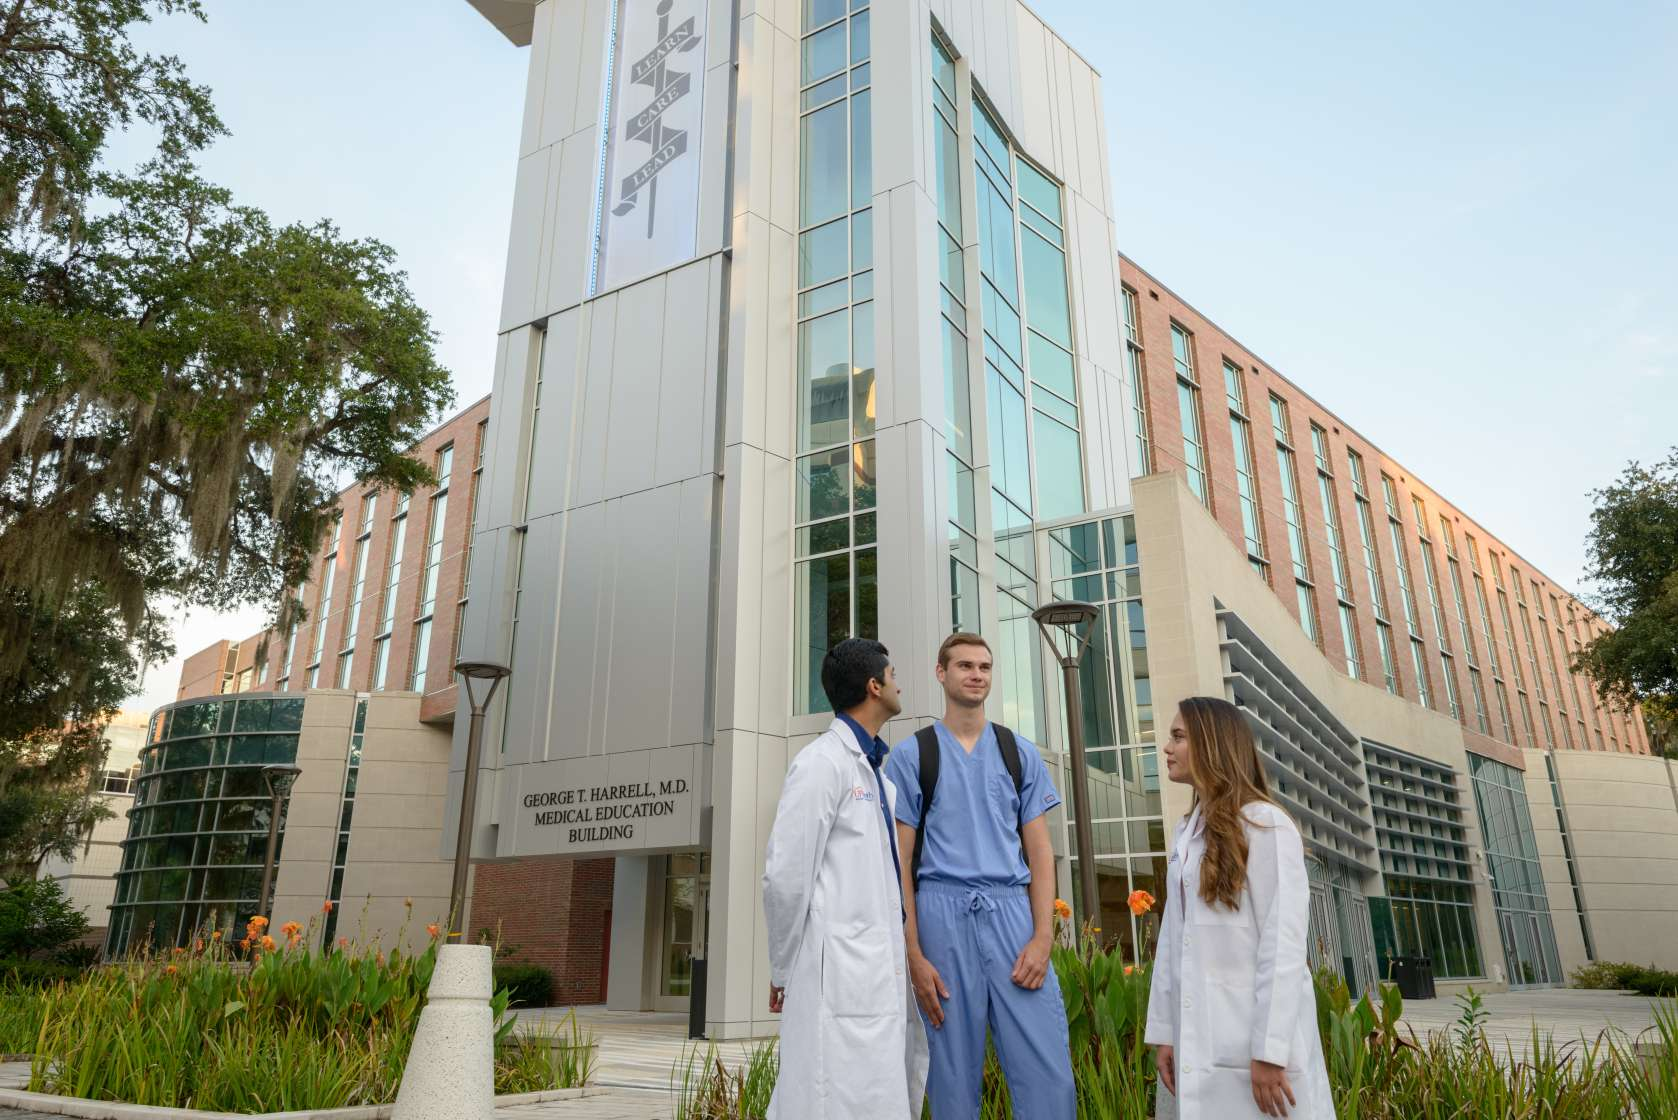 Students in front of the Medical Education Building